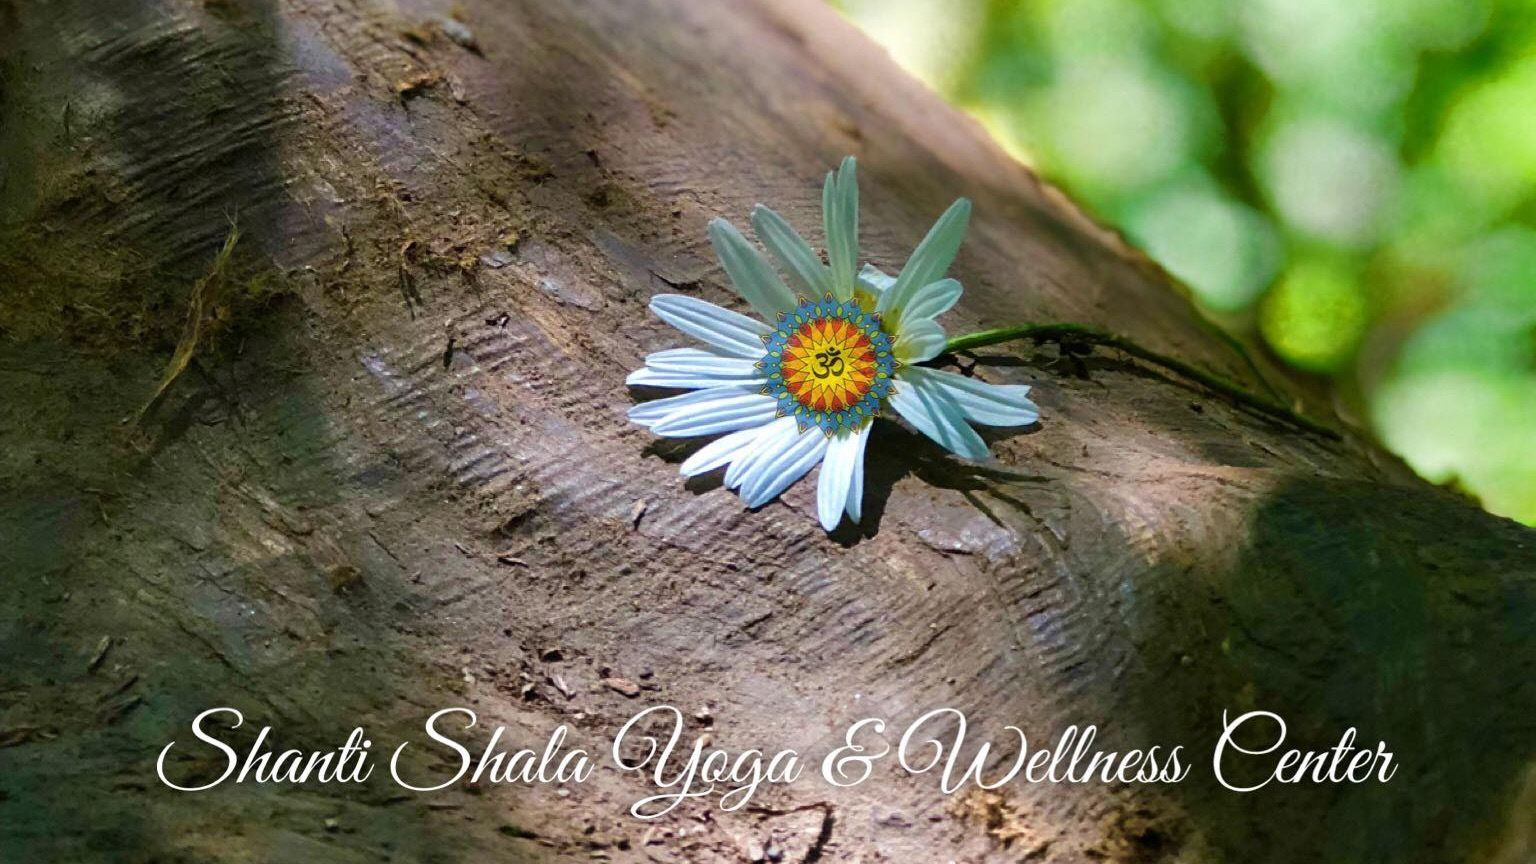 Shanti Shala Yoga & Wellness Center